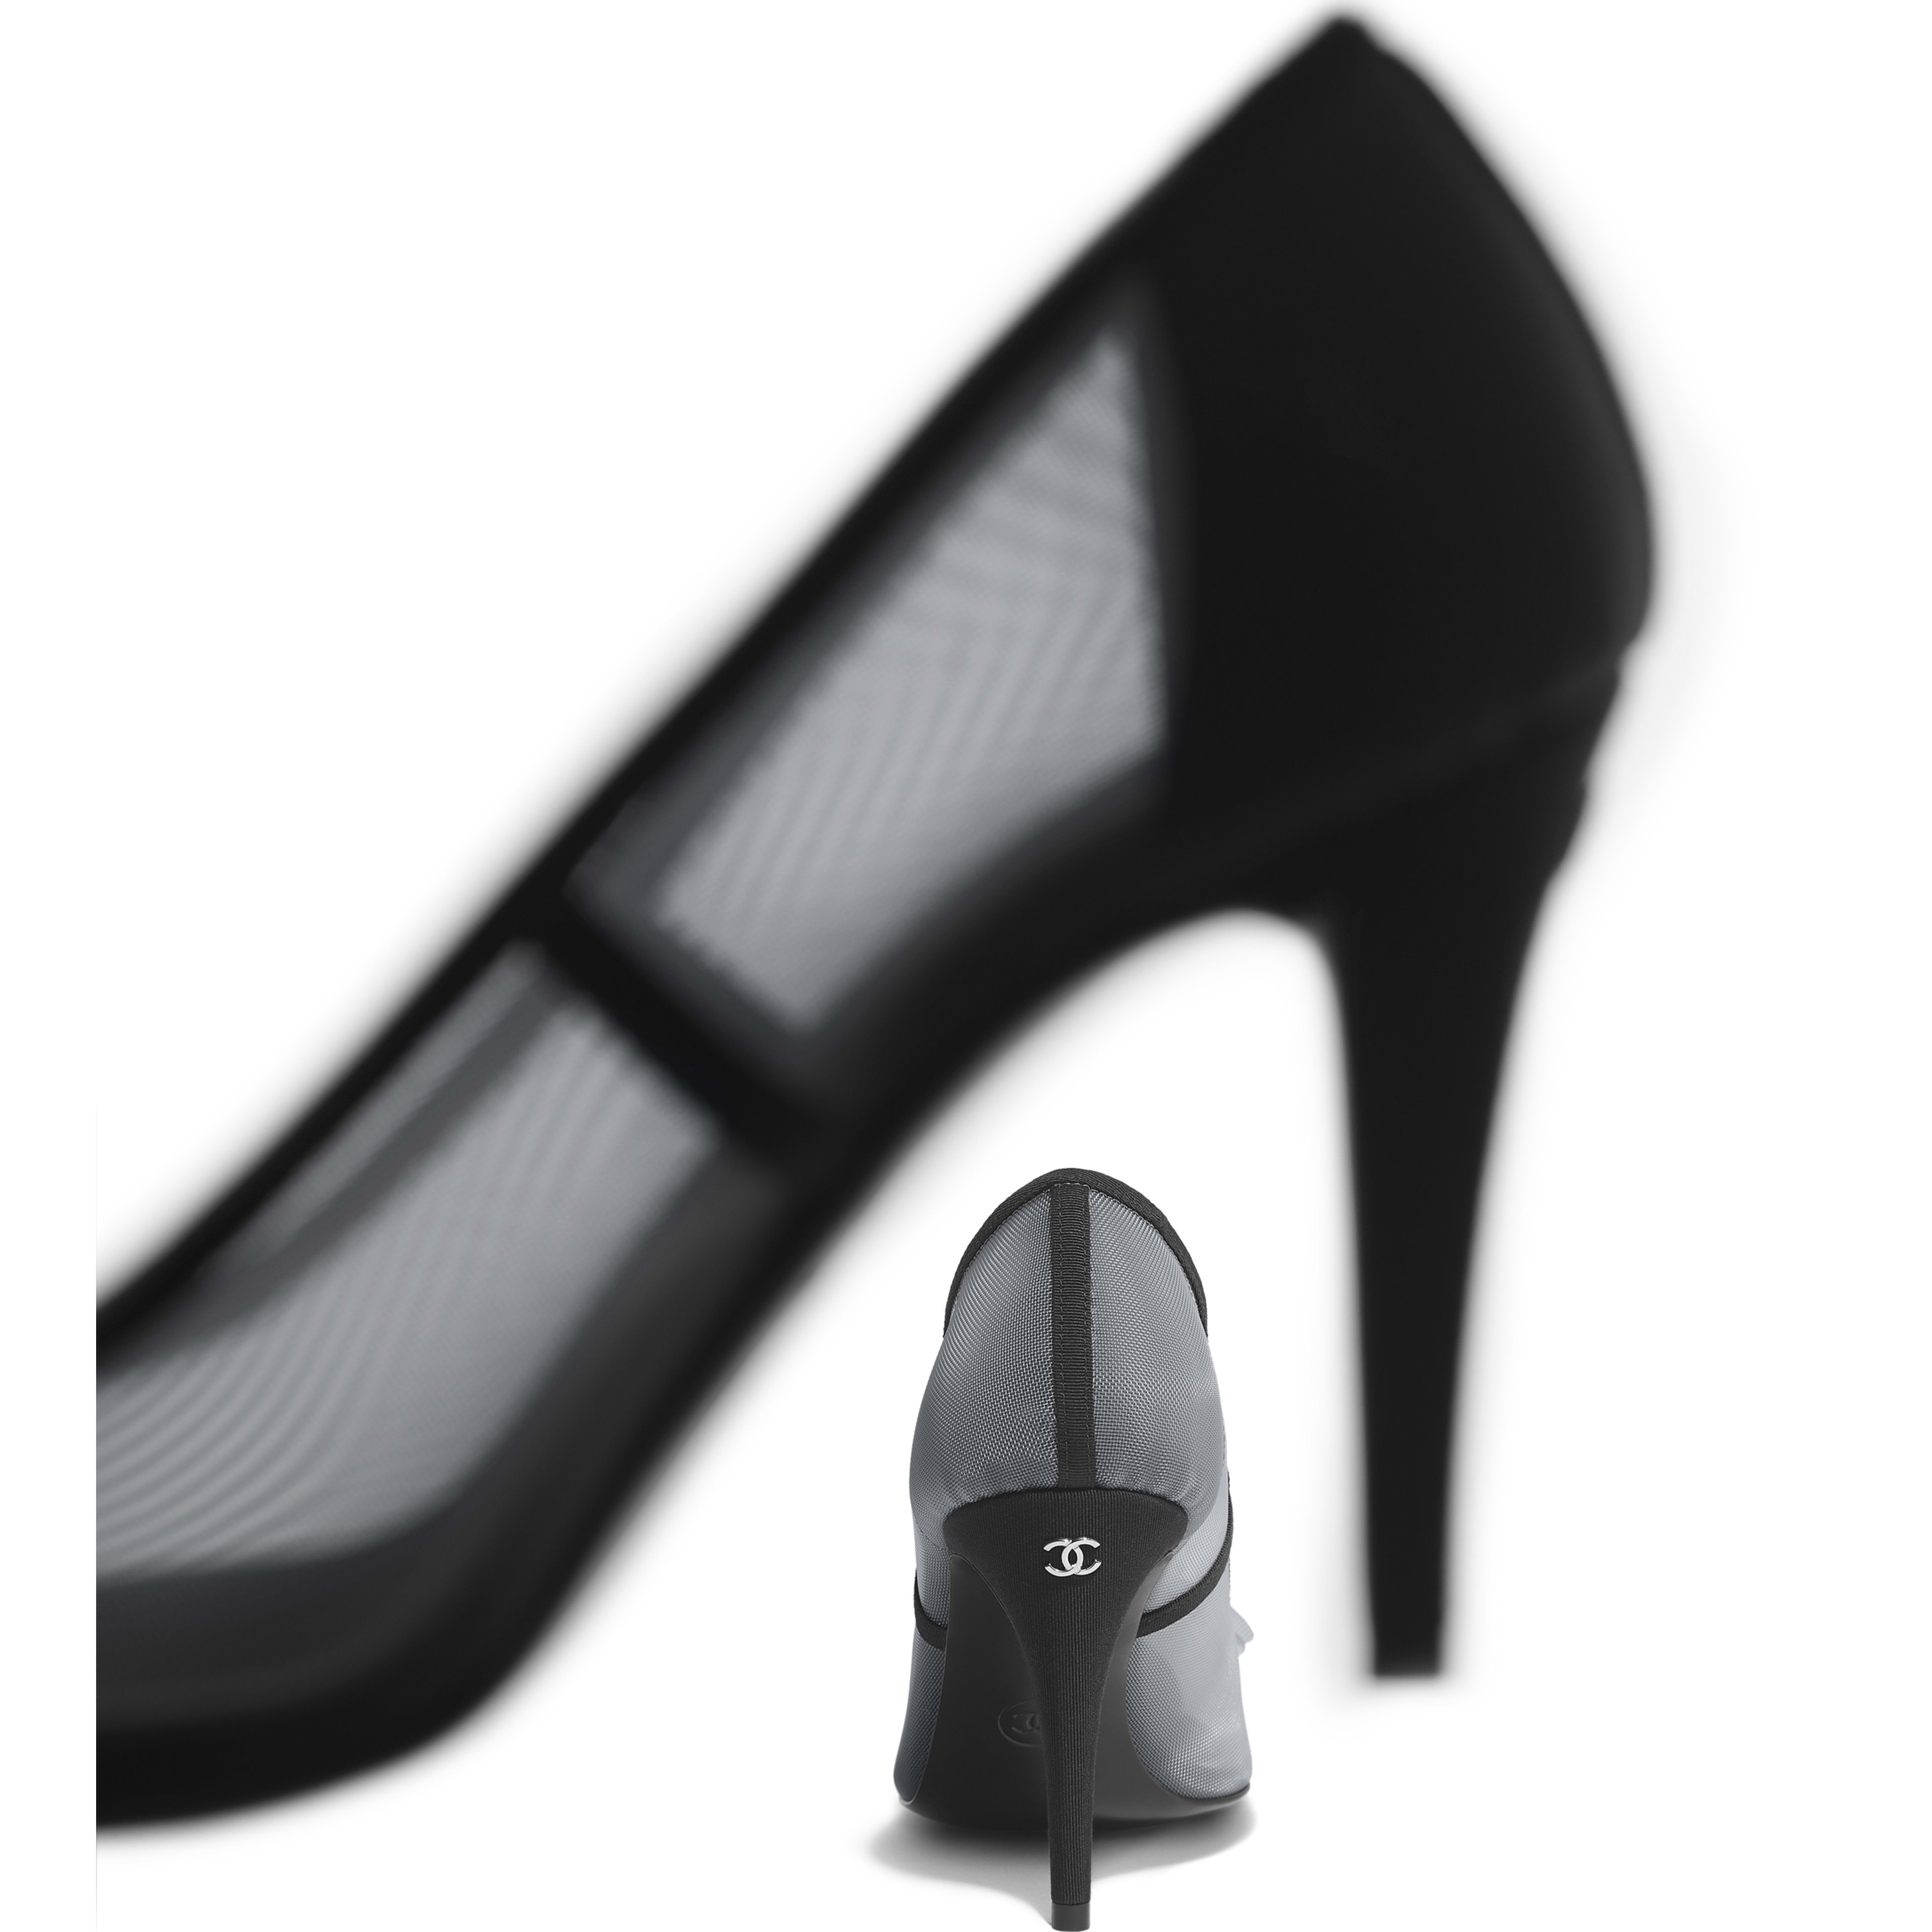 Pumps - Gray & Black - Mesh & Grosgrain - Other view - see full sized version